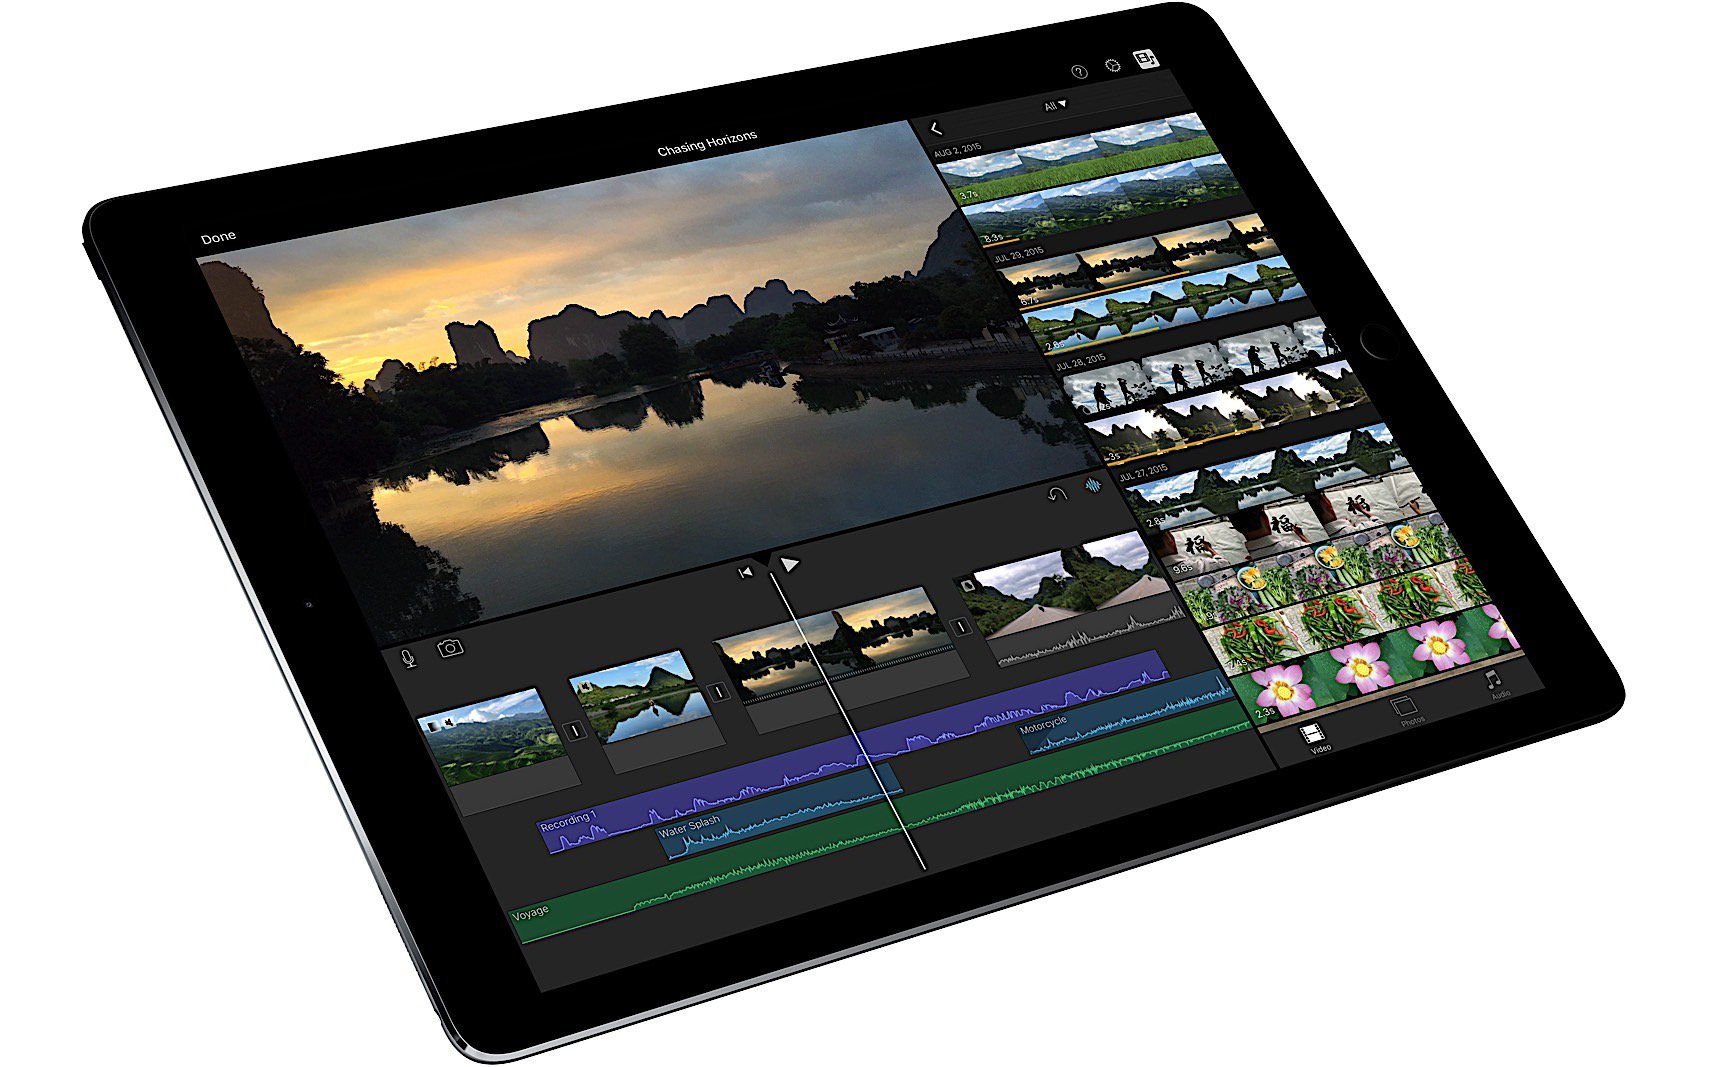 The Ipad Pro's Mobility Helps Video Editors On The Go You Could Use A  Macbook Pro How To